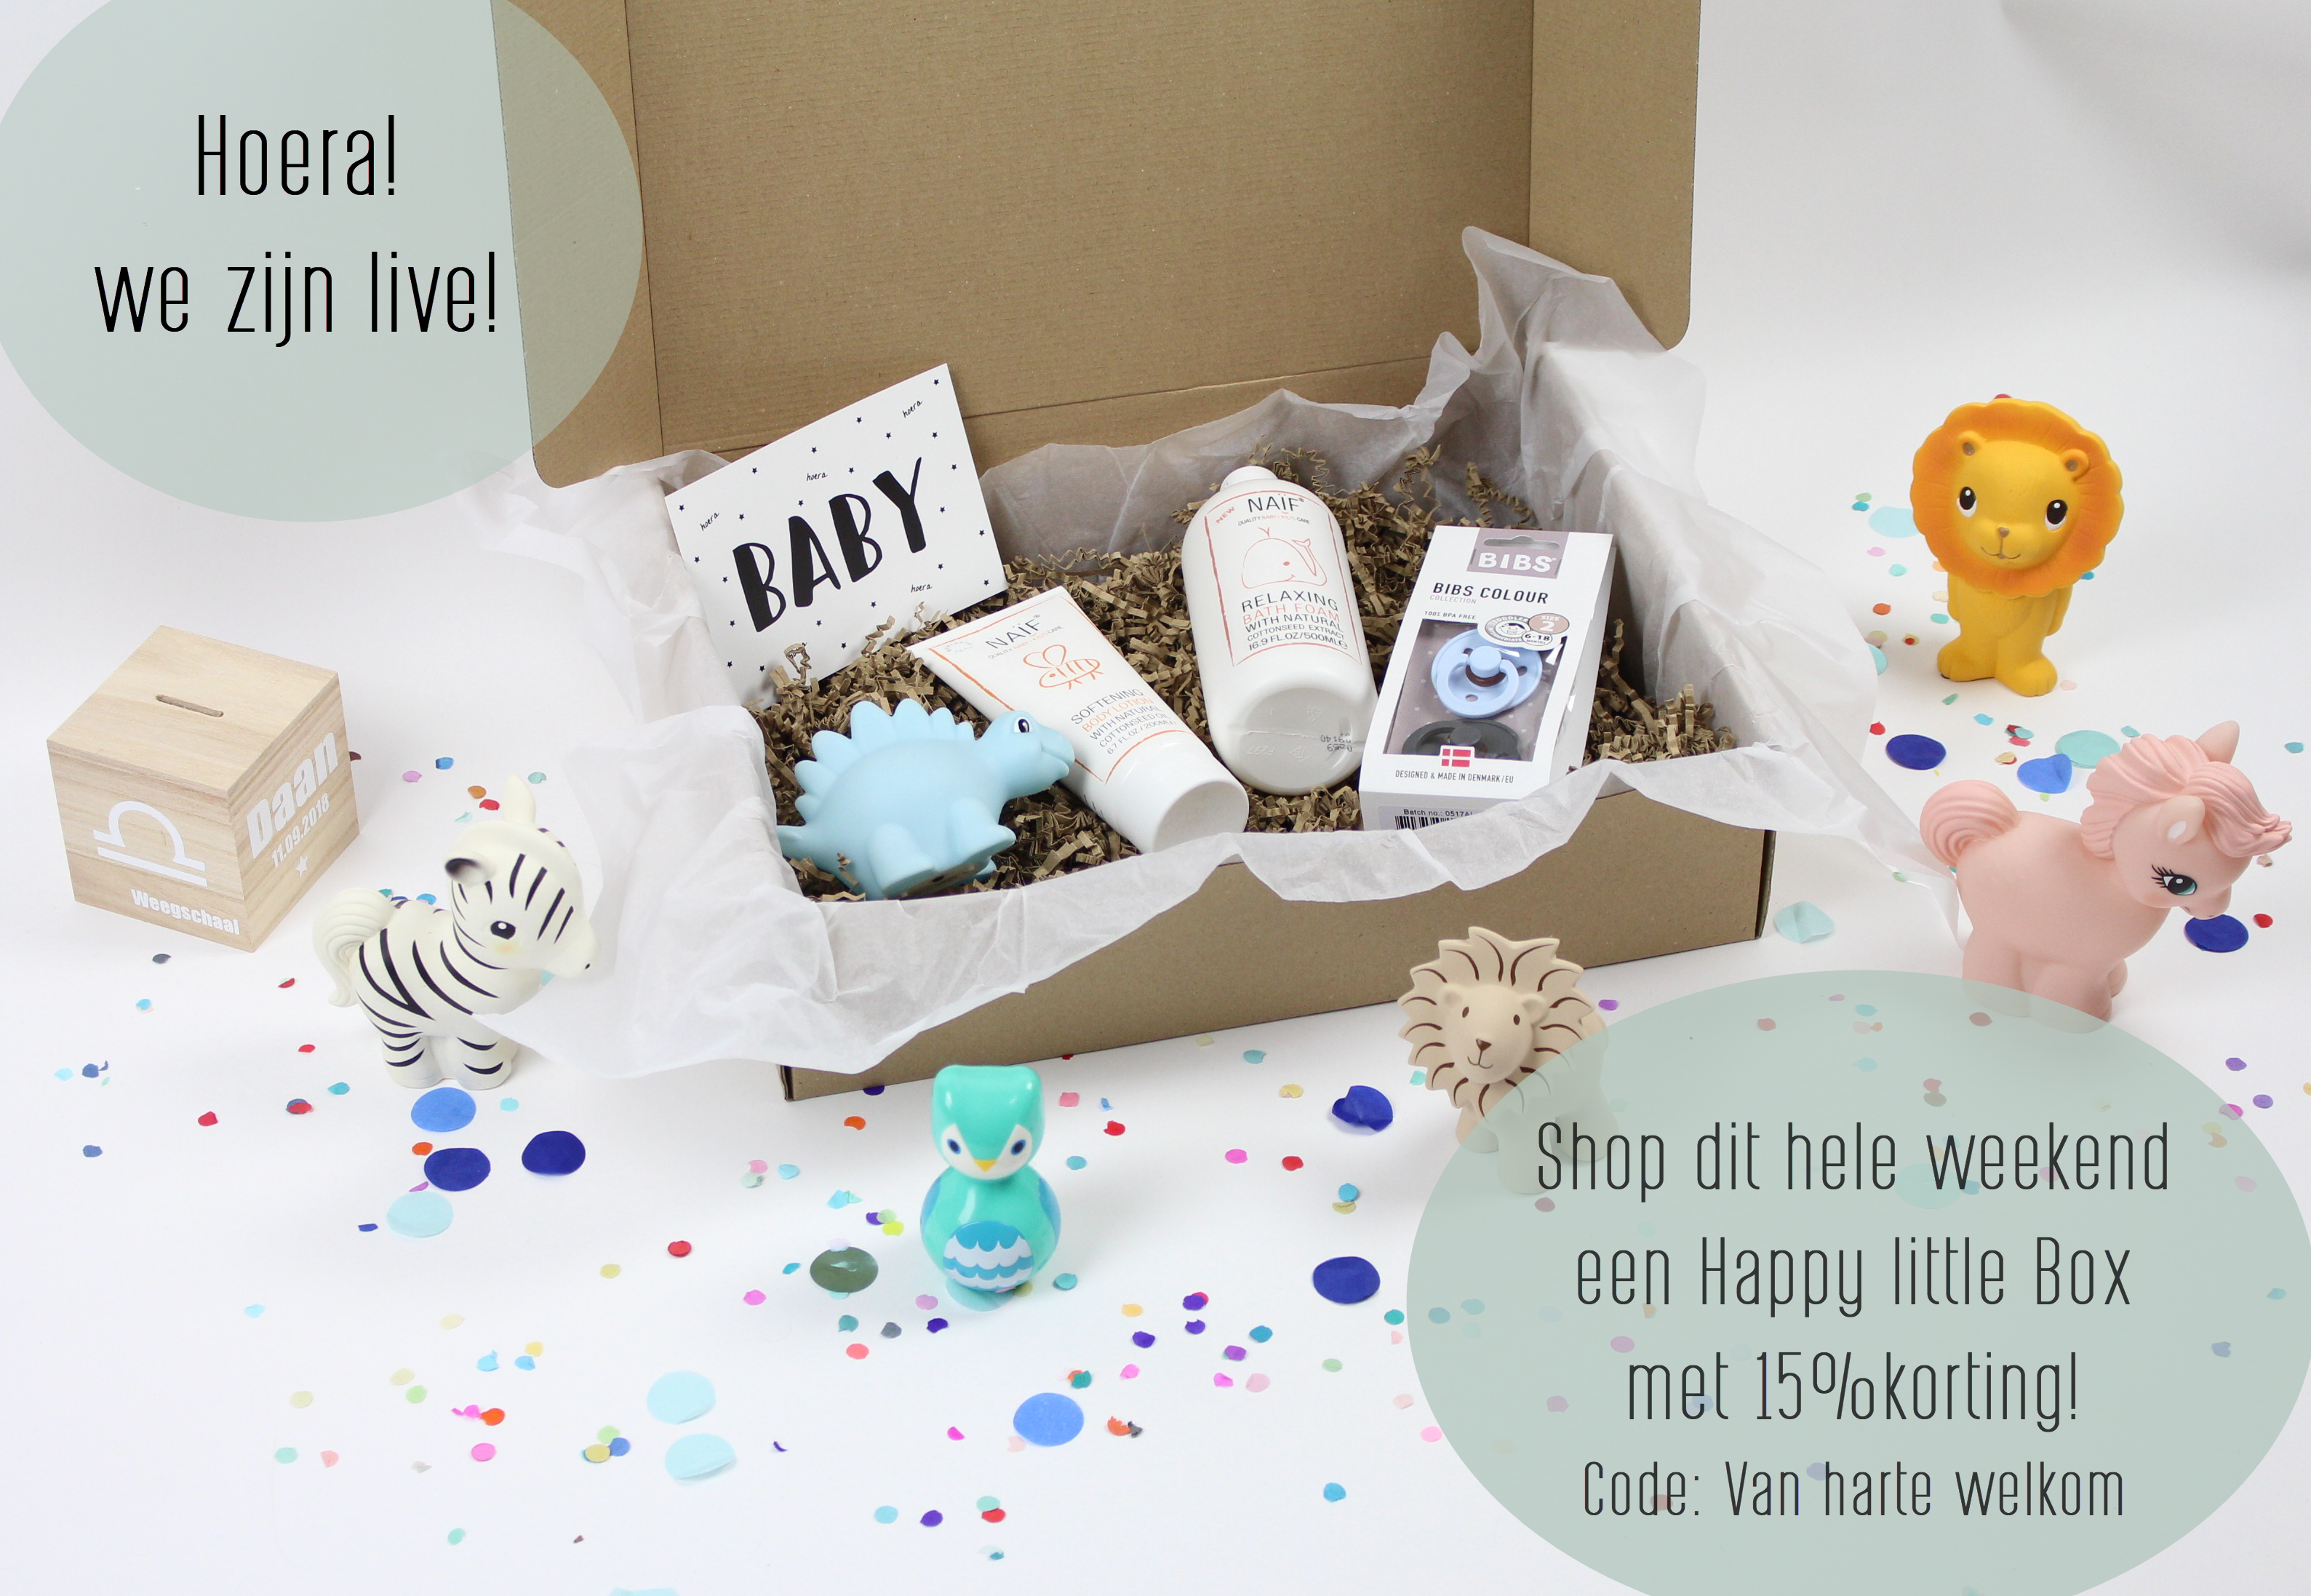 happylittlebox.nl